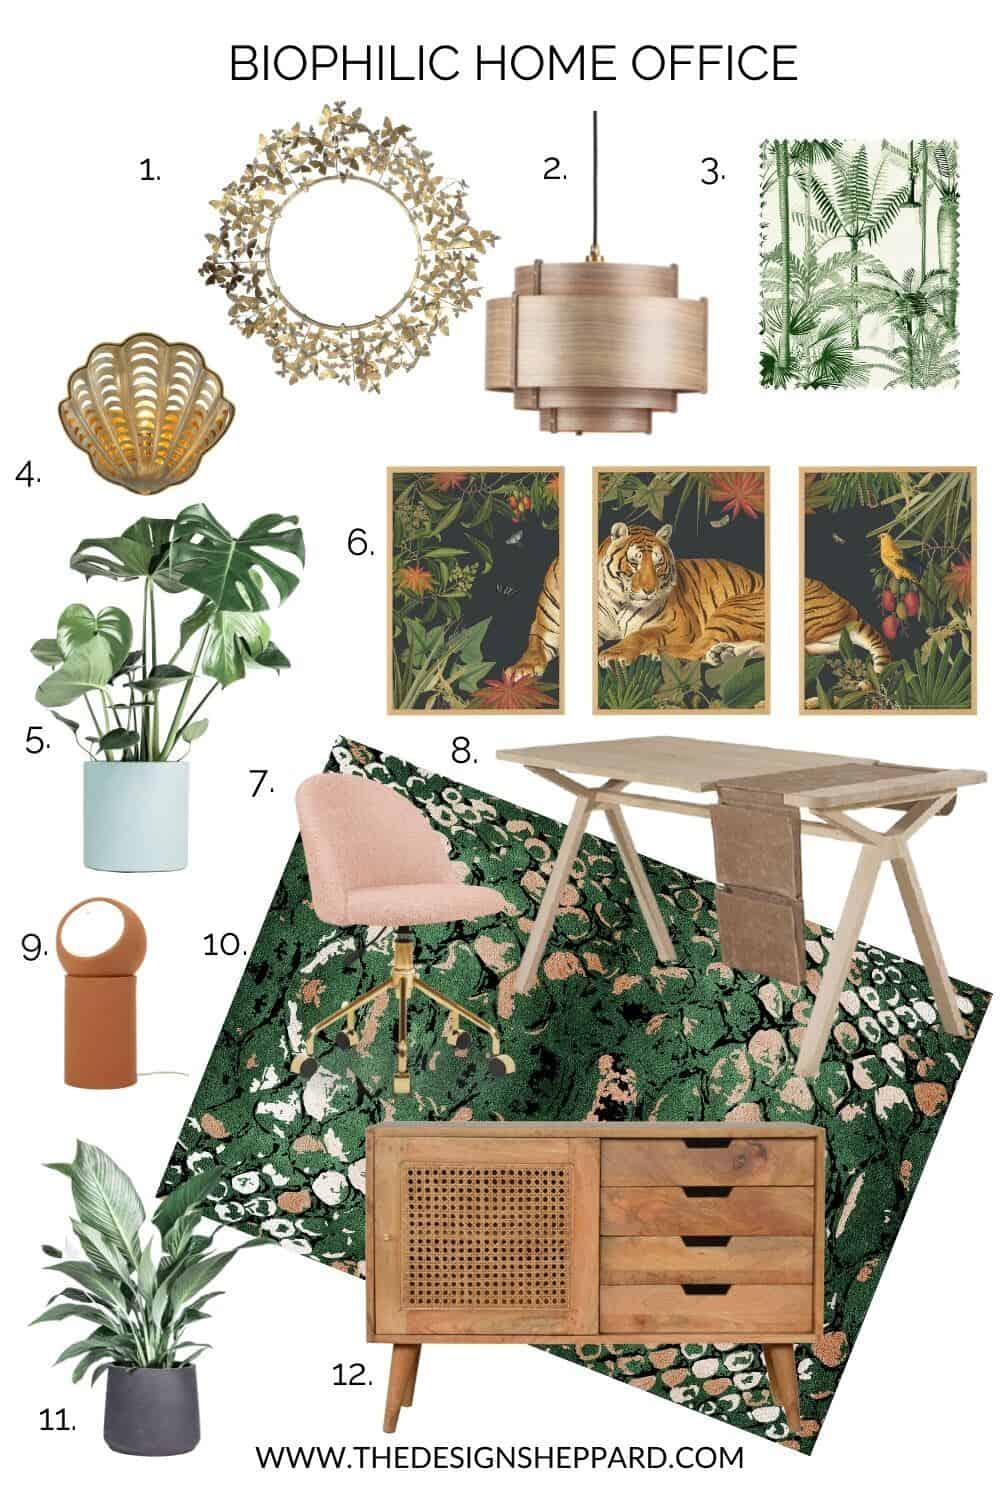 a moodboard featuring home interior products to create a Biophilic home office.